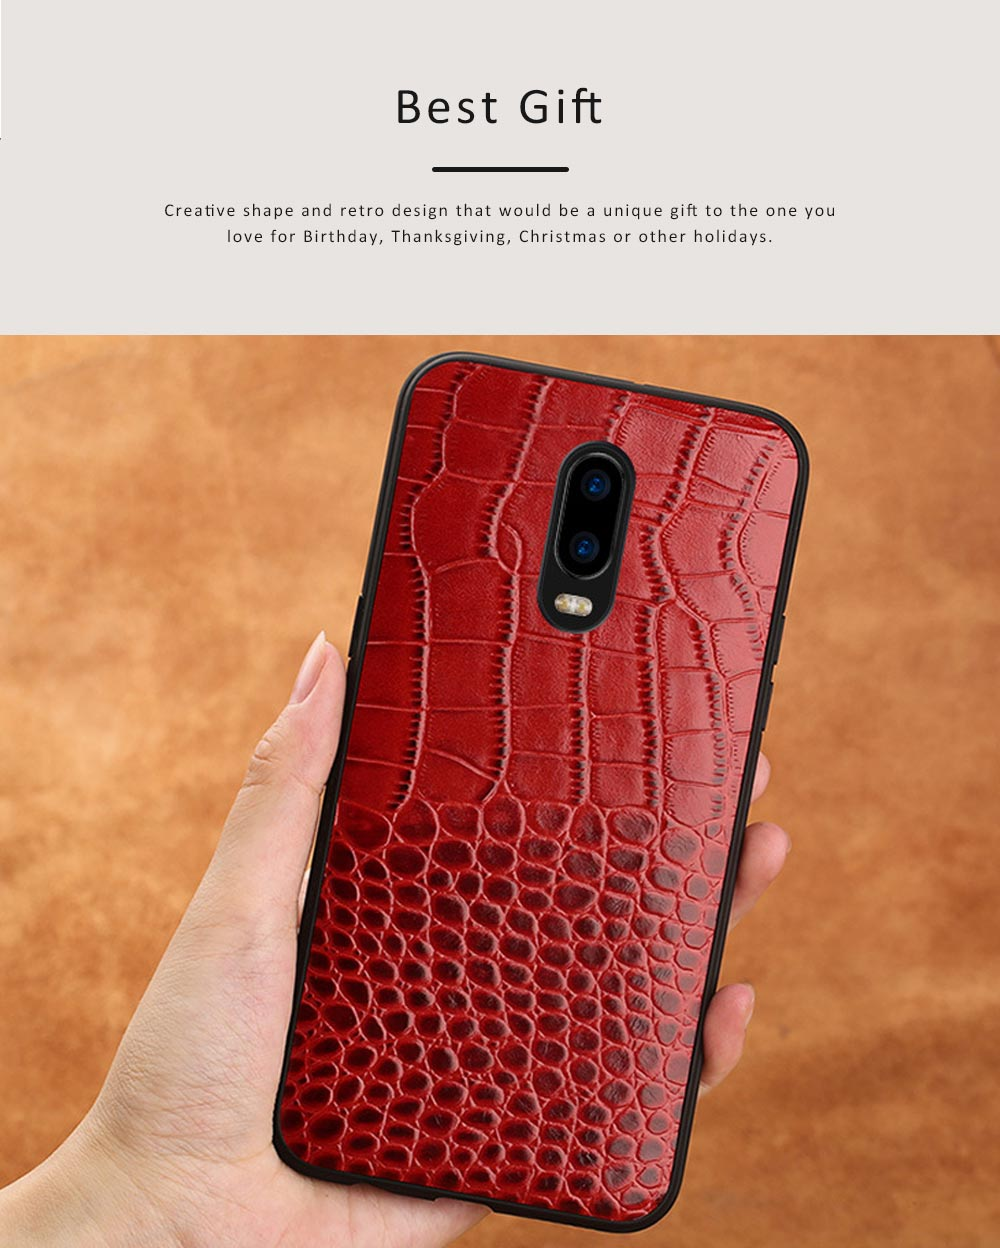 Phone Case Retro Genuine Leather 3D Alligator Skin Texture Case Fashion Phone Accessories for OPPOR Series 5